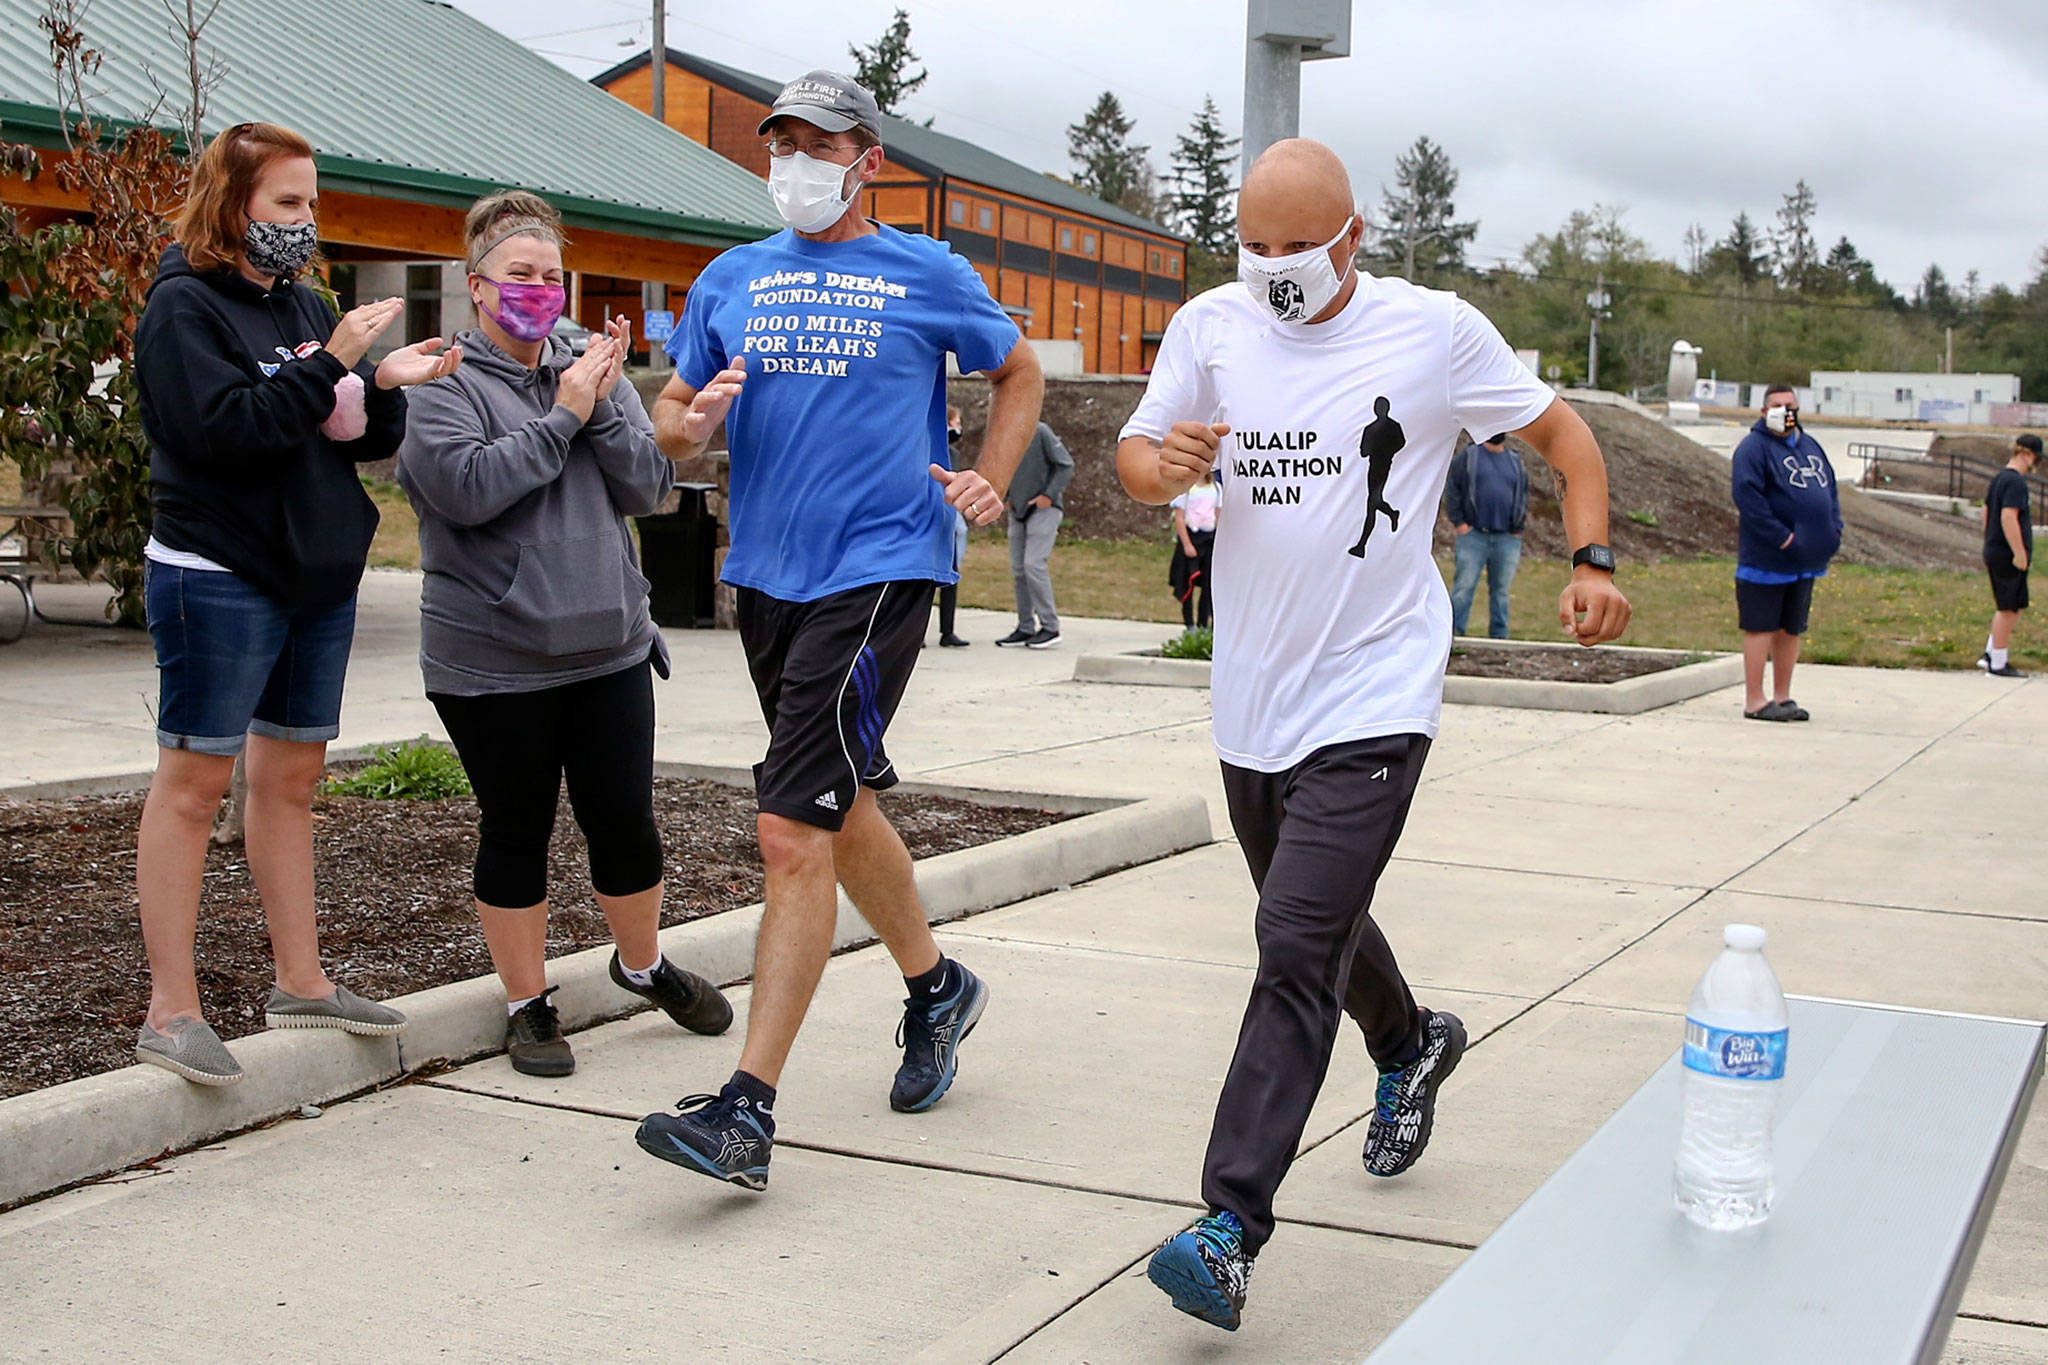 Jim Strickland (left) runs with Tyler Fryberg for the final mile in a 1,000-mile challenge to raise money for Leah's Dream Foundation. (Kevin Clark / The Herald)